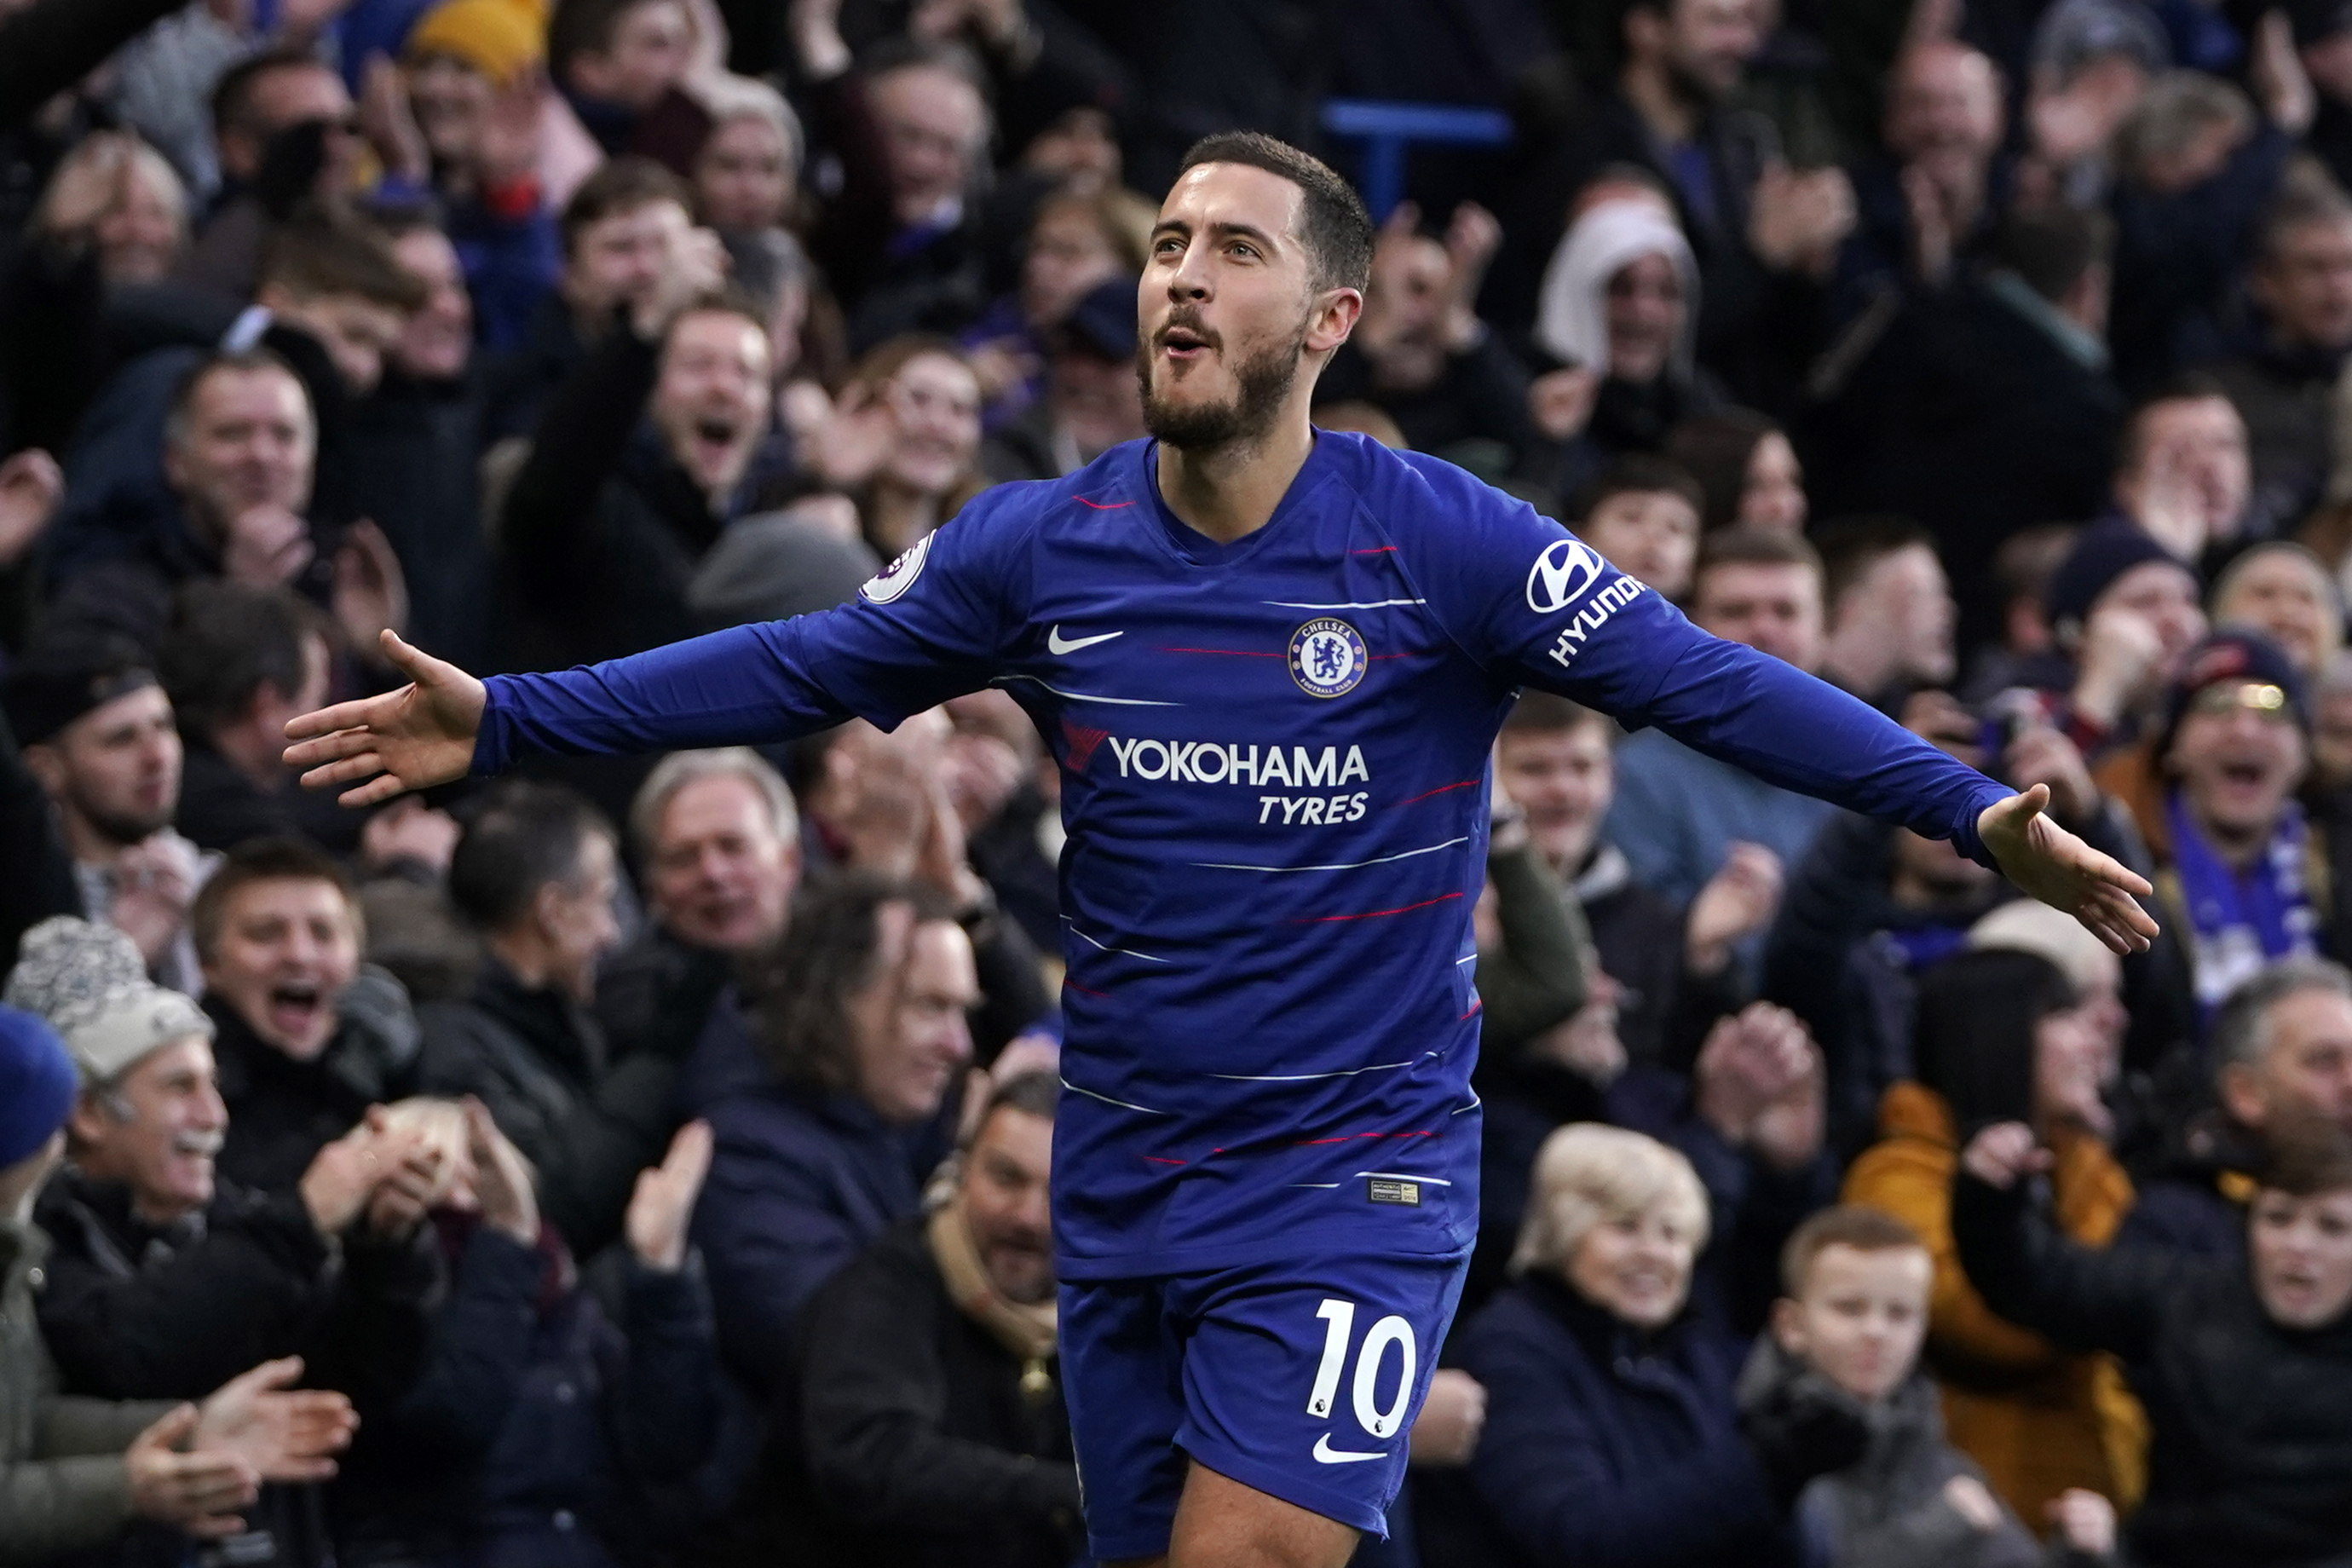 WO001. London (United Kingdom), 02/02/2019.- Chelsea's Eden Hazard celebrates after scoring against Huddersfield during their English Premier League soccer match at Stamford Bridge, London, Britain, 02 February 2019. (Londres) EFE/EPA/WILL OLIVER EDITORIAL USE ONLY. No use with unauthorized audio, video, data, fixture lists, club/league logos or 'live' services. Online in-match use limited to 120 images, no video emulation. No use in betting, games or single club/league/player publications